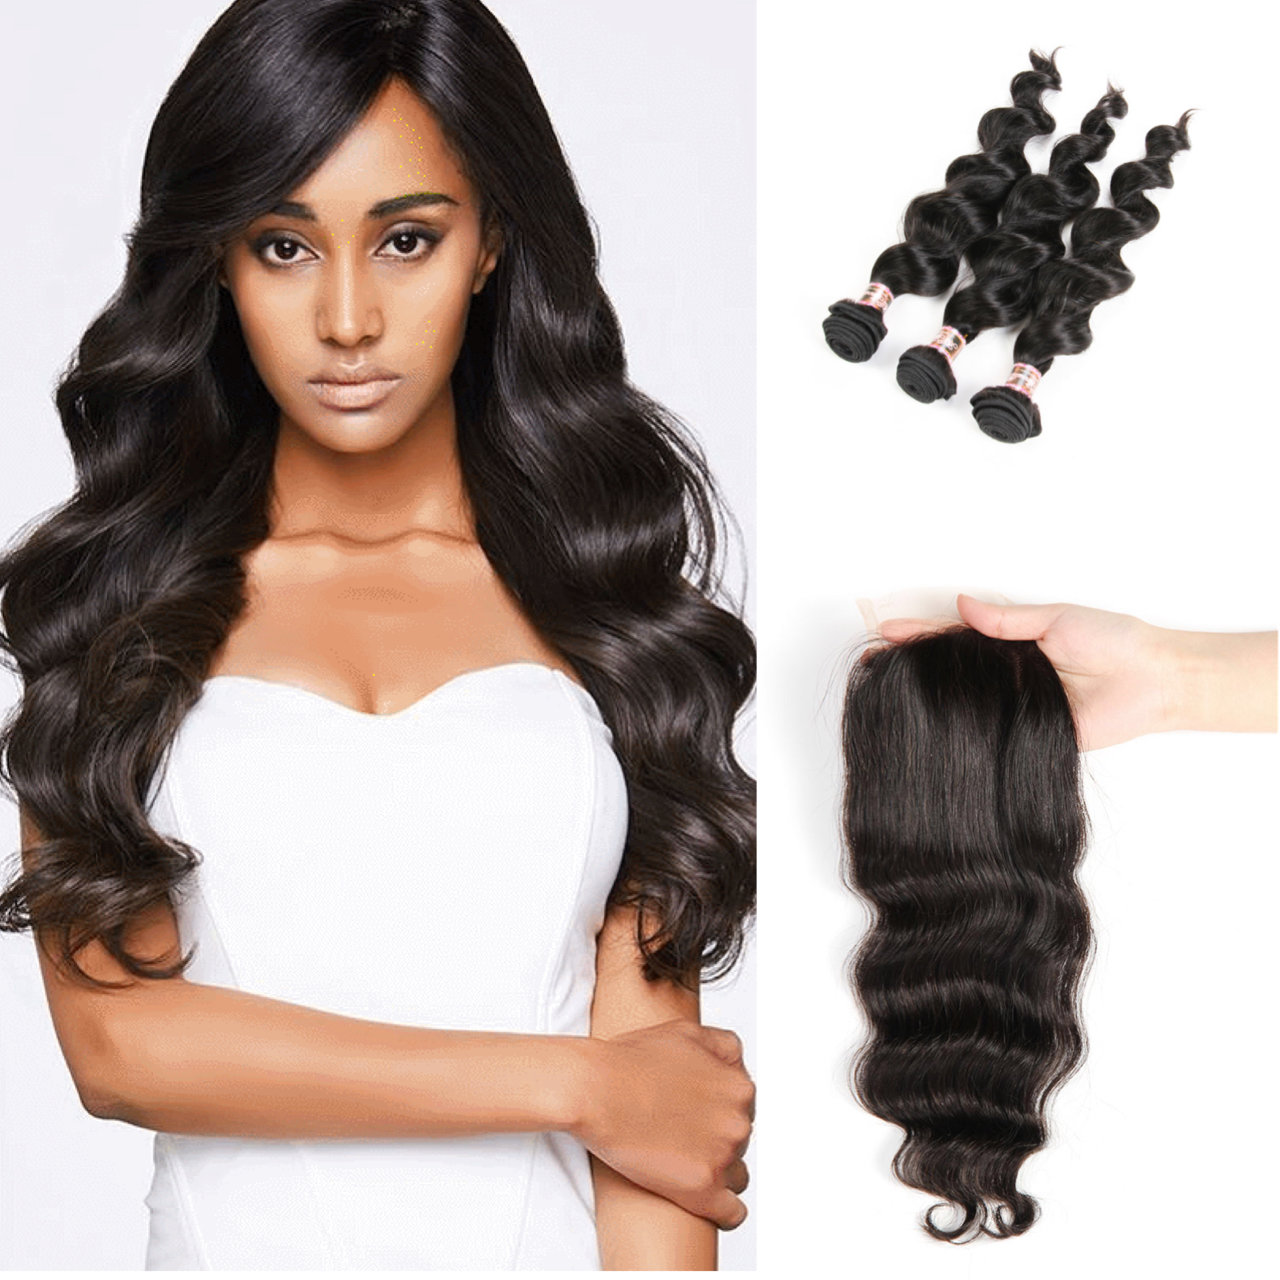 4 PCS/LOT Bundles Loose Body Wave Unprocessed Human Hair Extension with Lace Closure